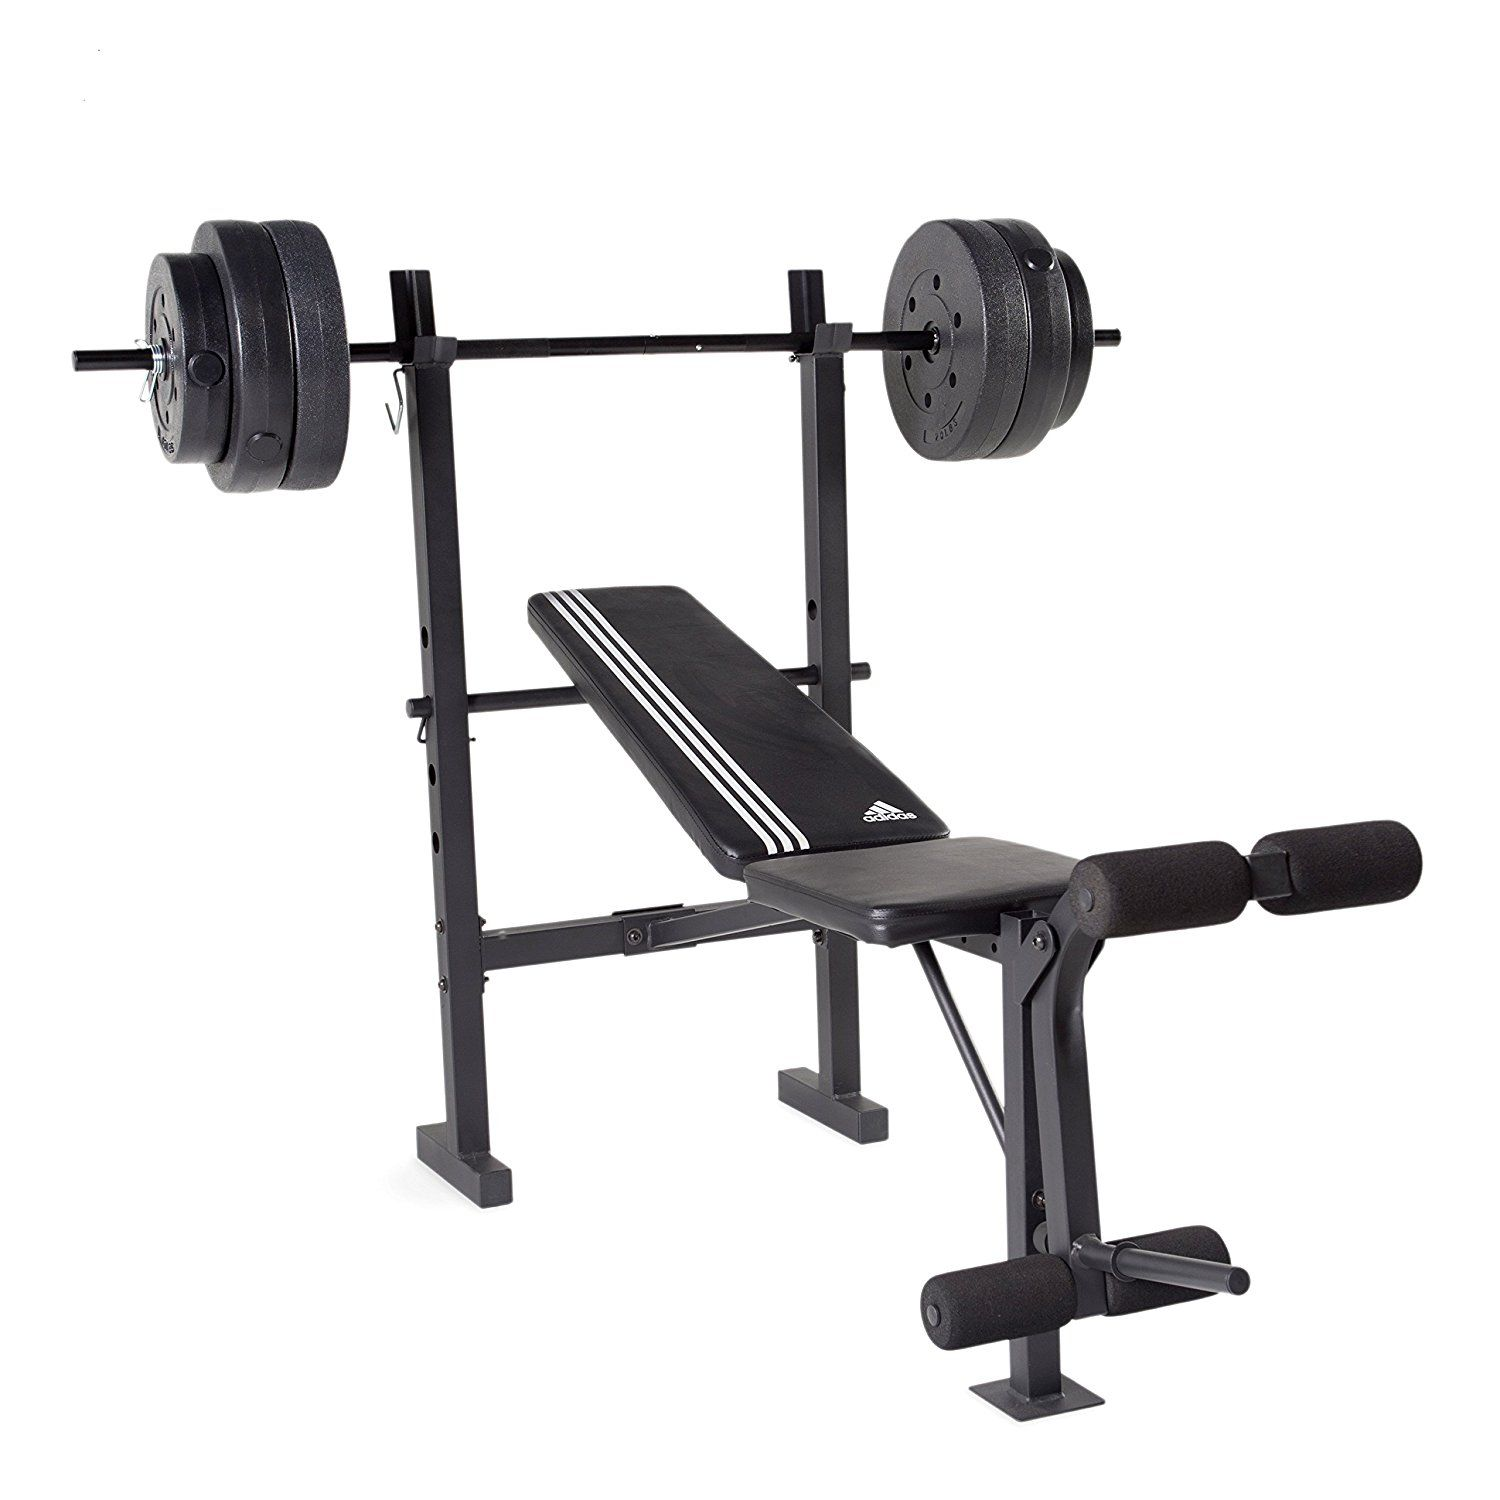 Amazon.com : adidas Essential Combo Training Bench with weight Set, 100 lb : Sports & Outdoors